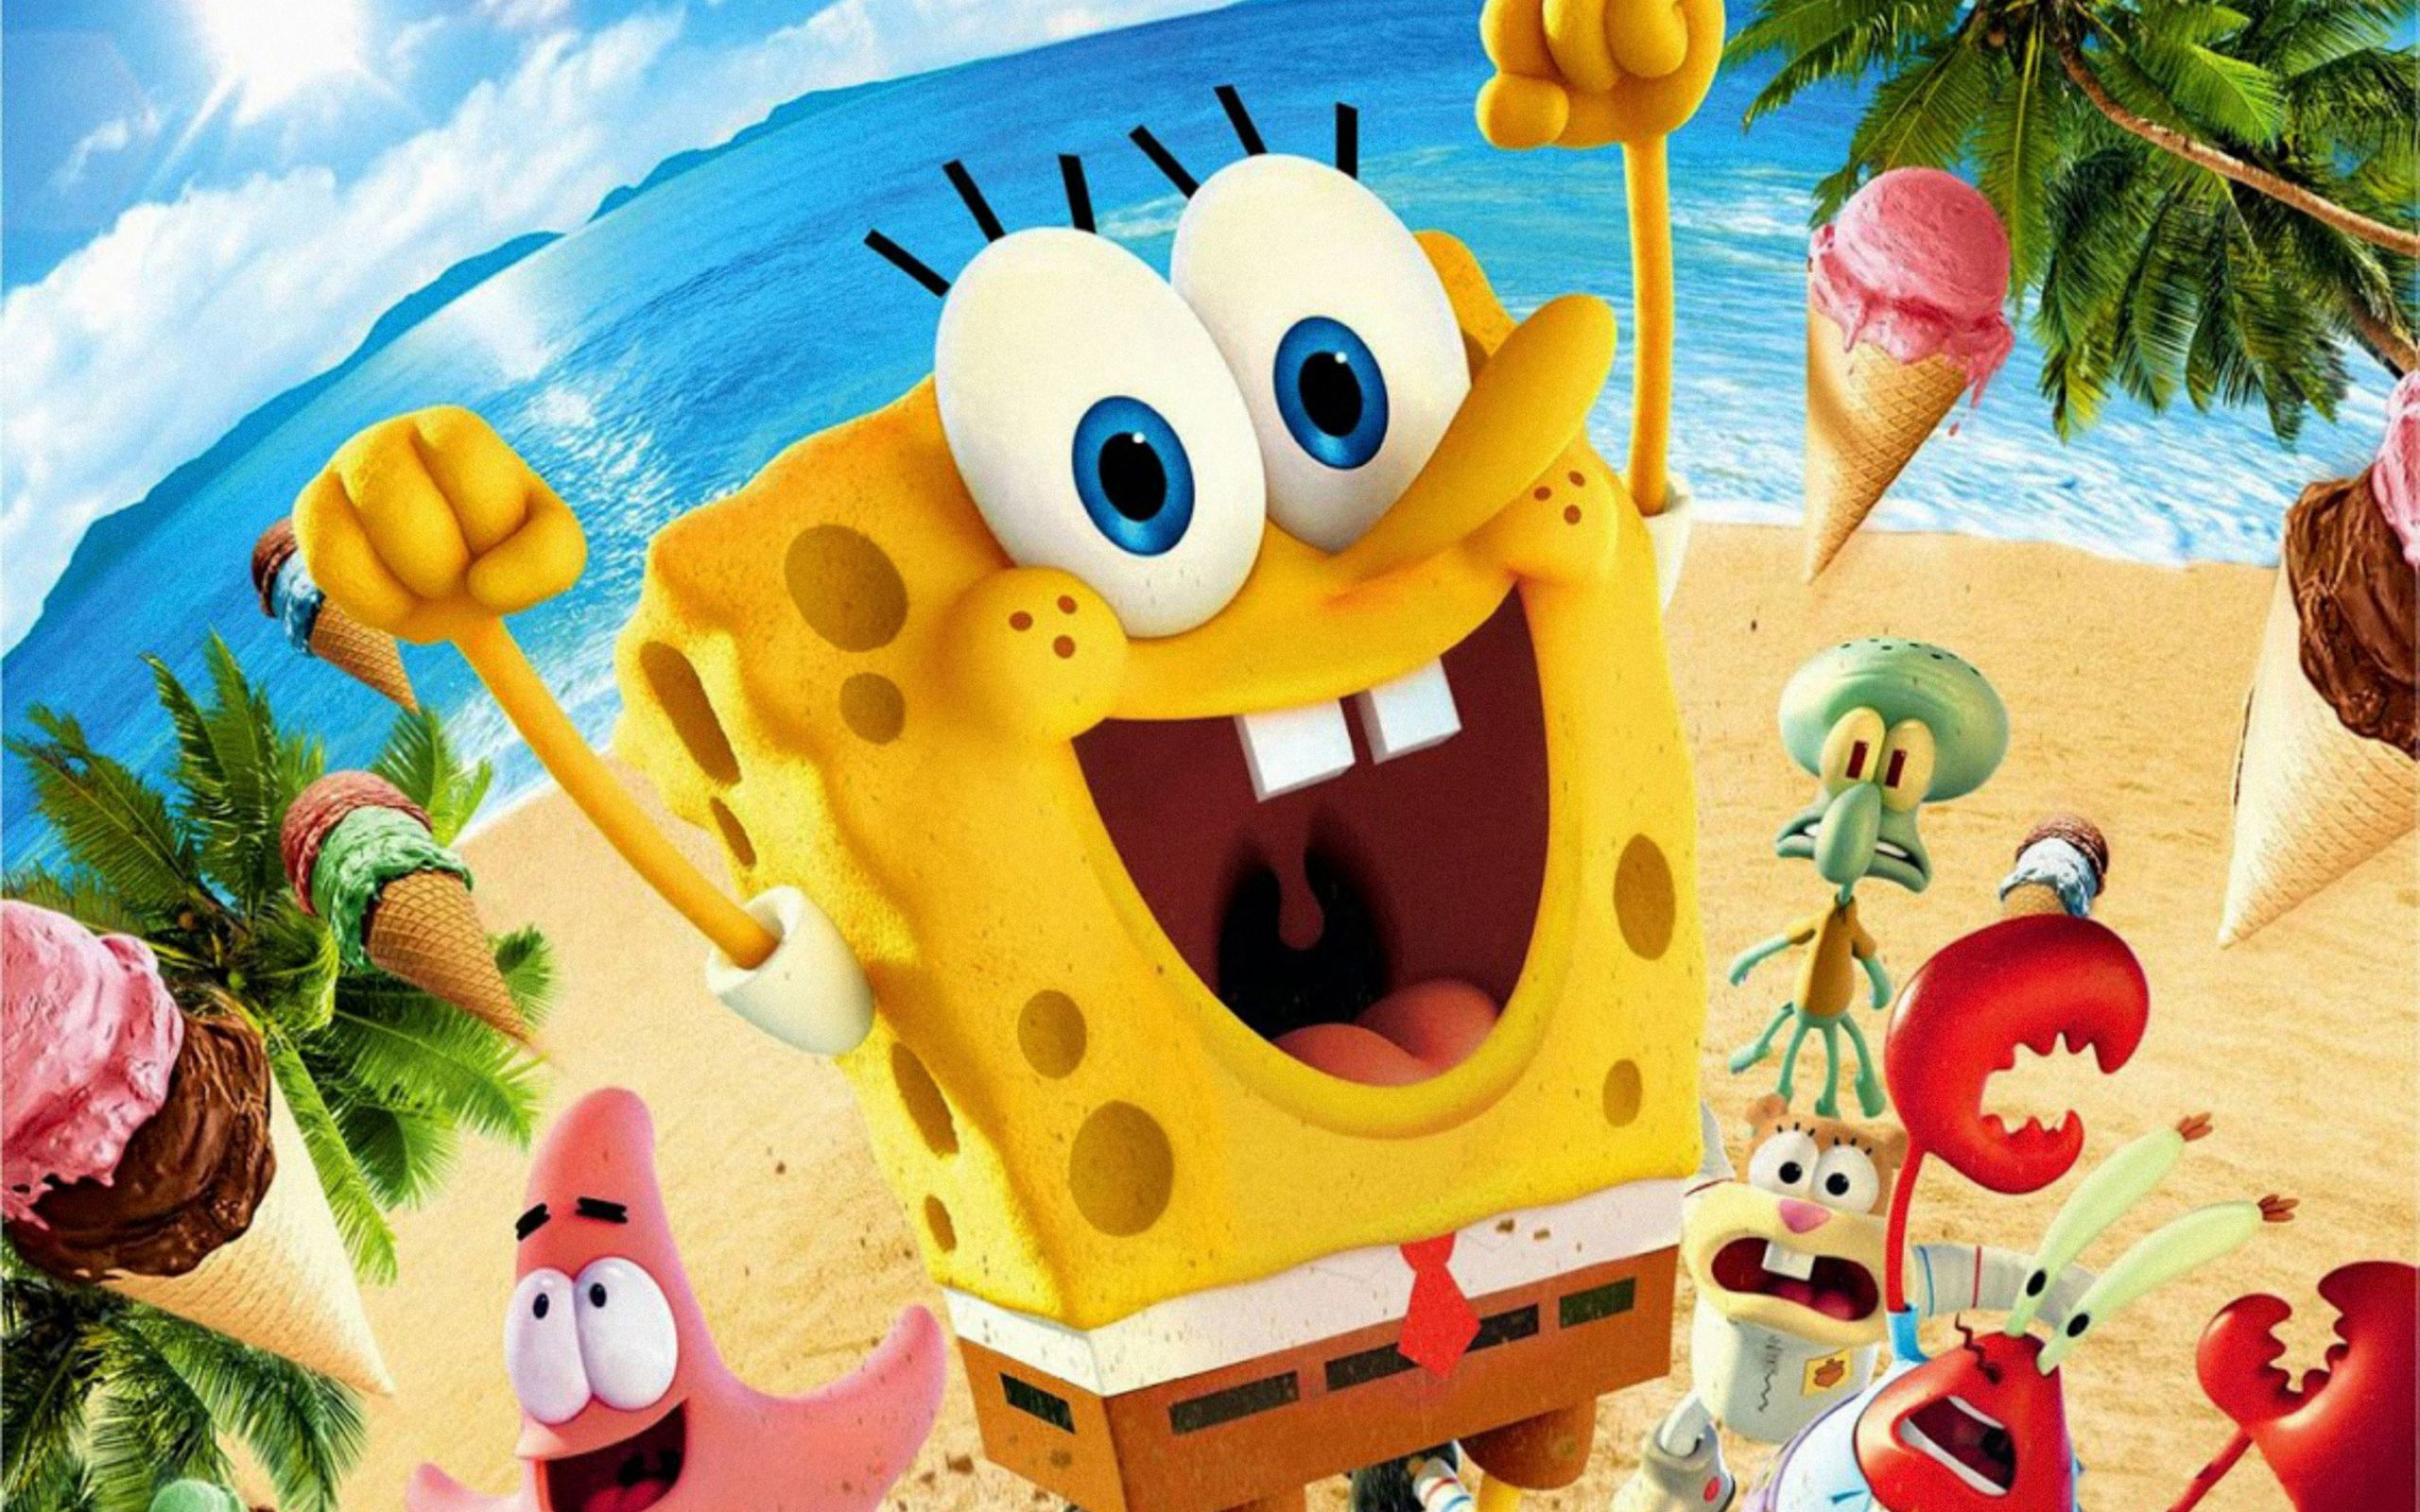 3d Wallpaper 2020 Spongebob Doraemon In 2020 Spongebob Wallpaper Spongebob Cartoon Spongebob